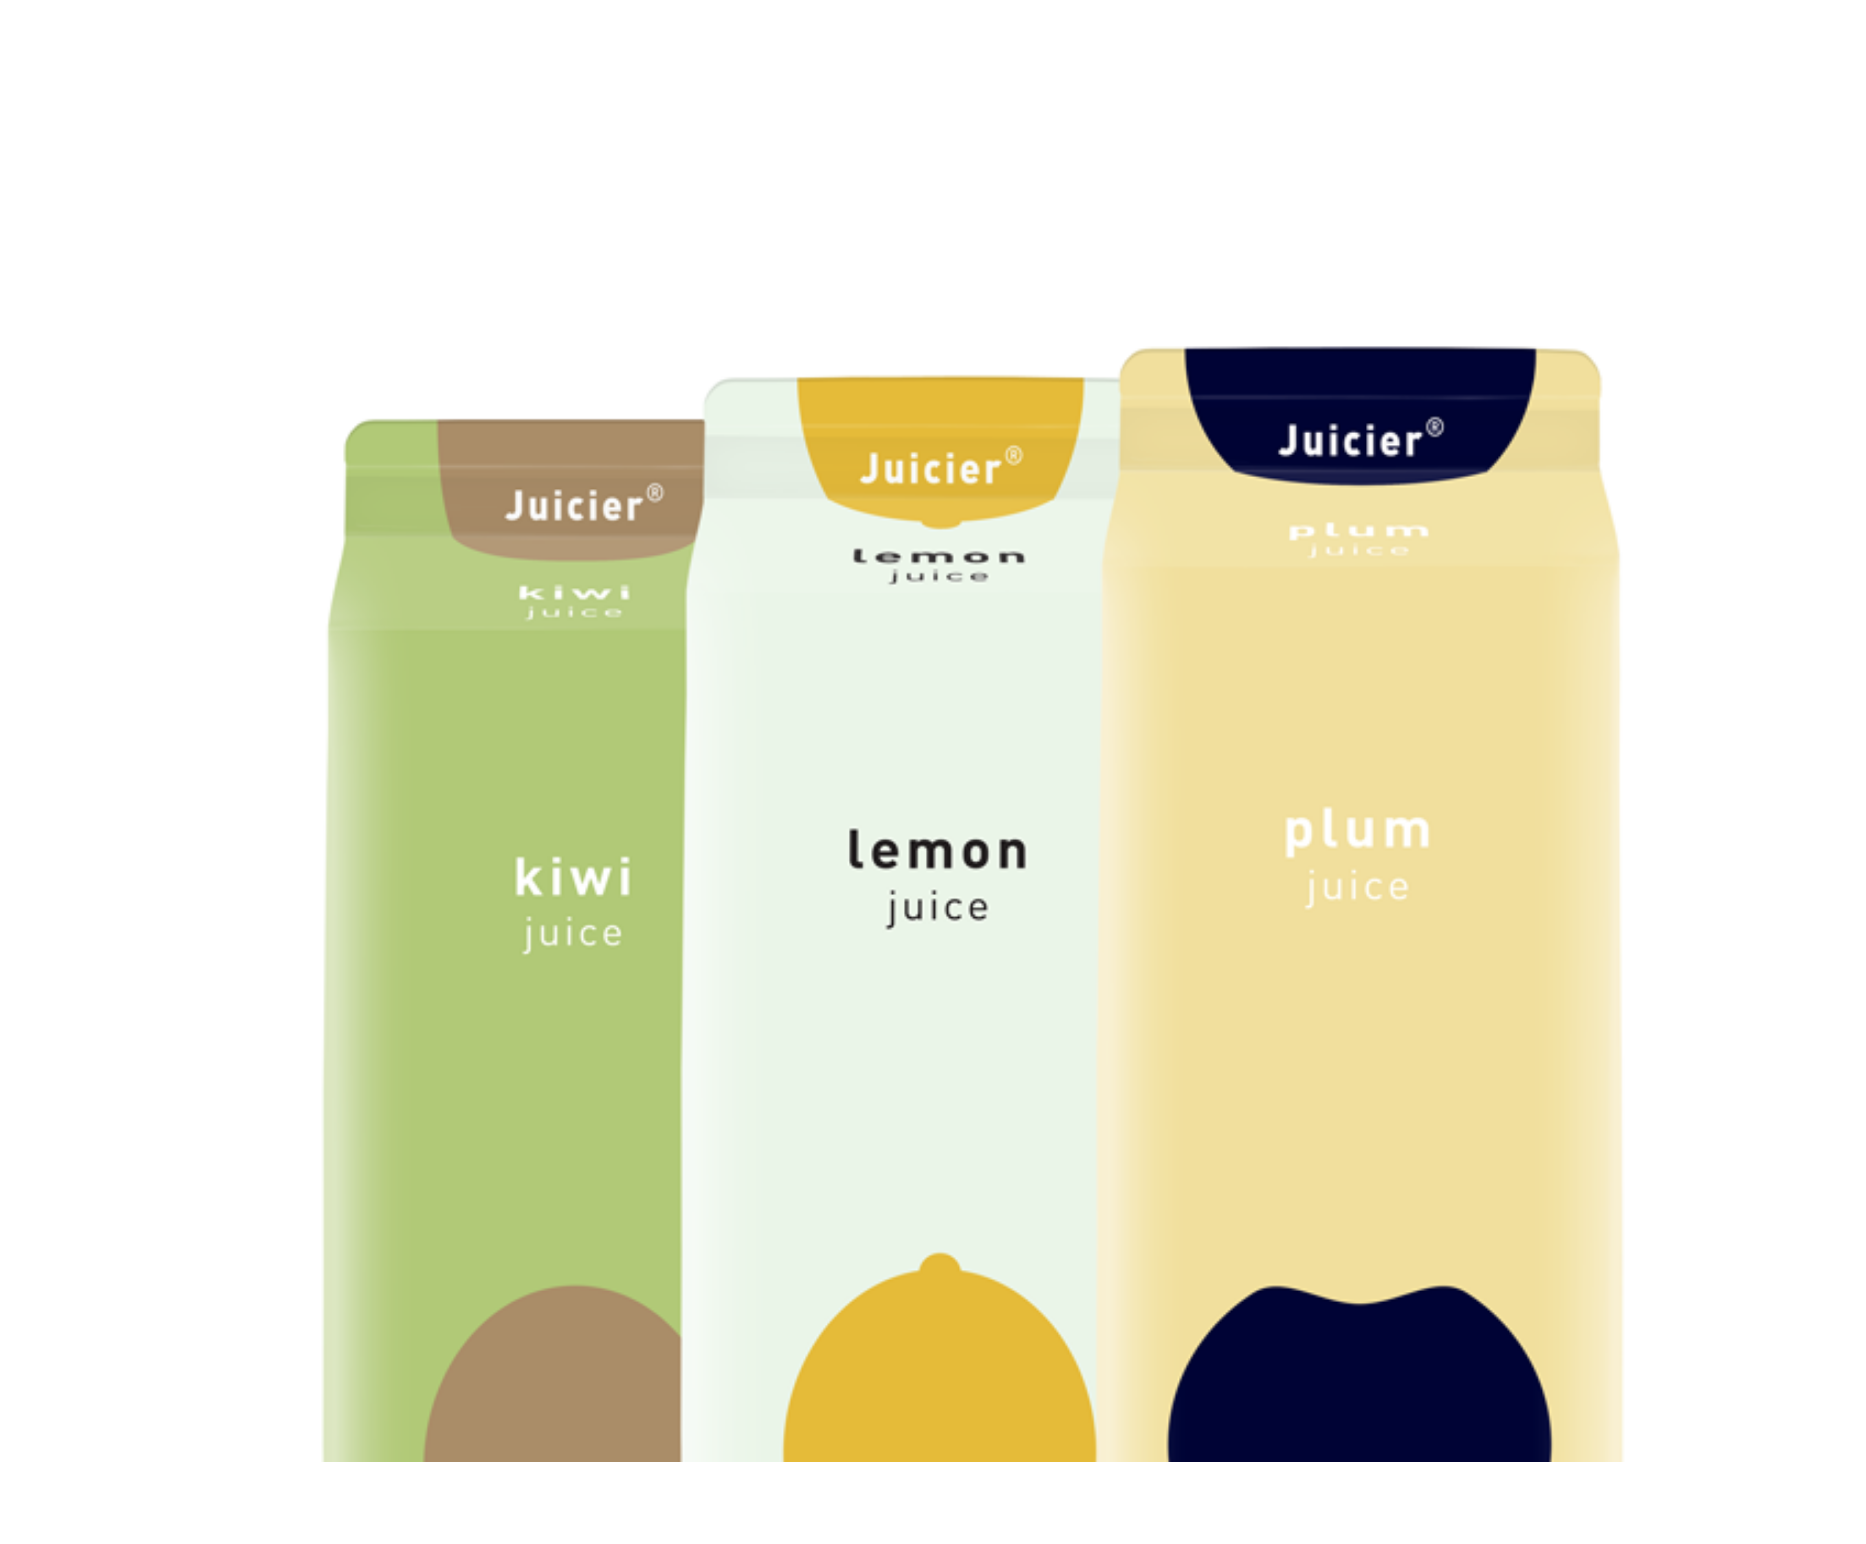 Jucier juice illustrations | Packaging